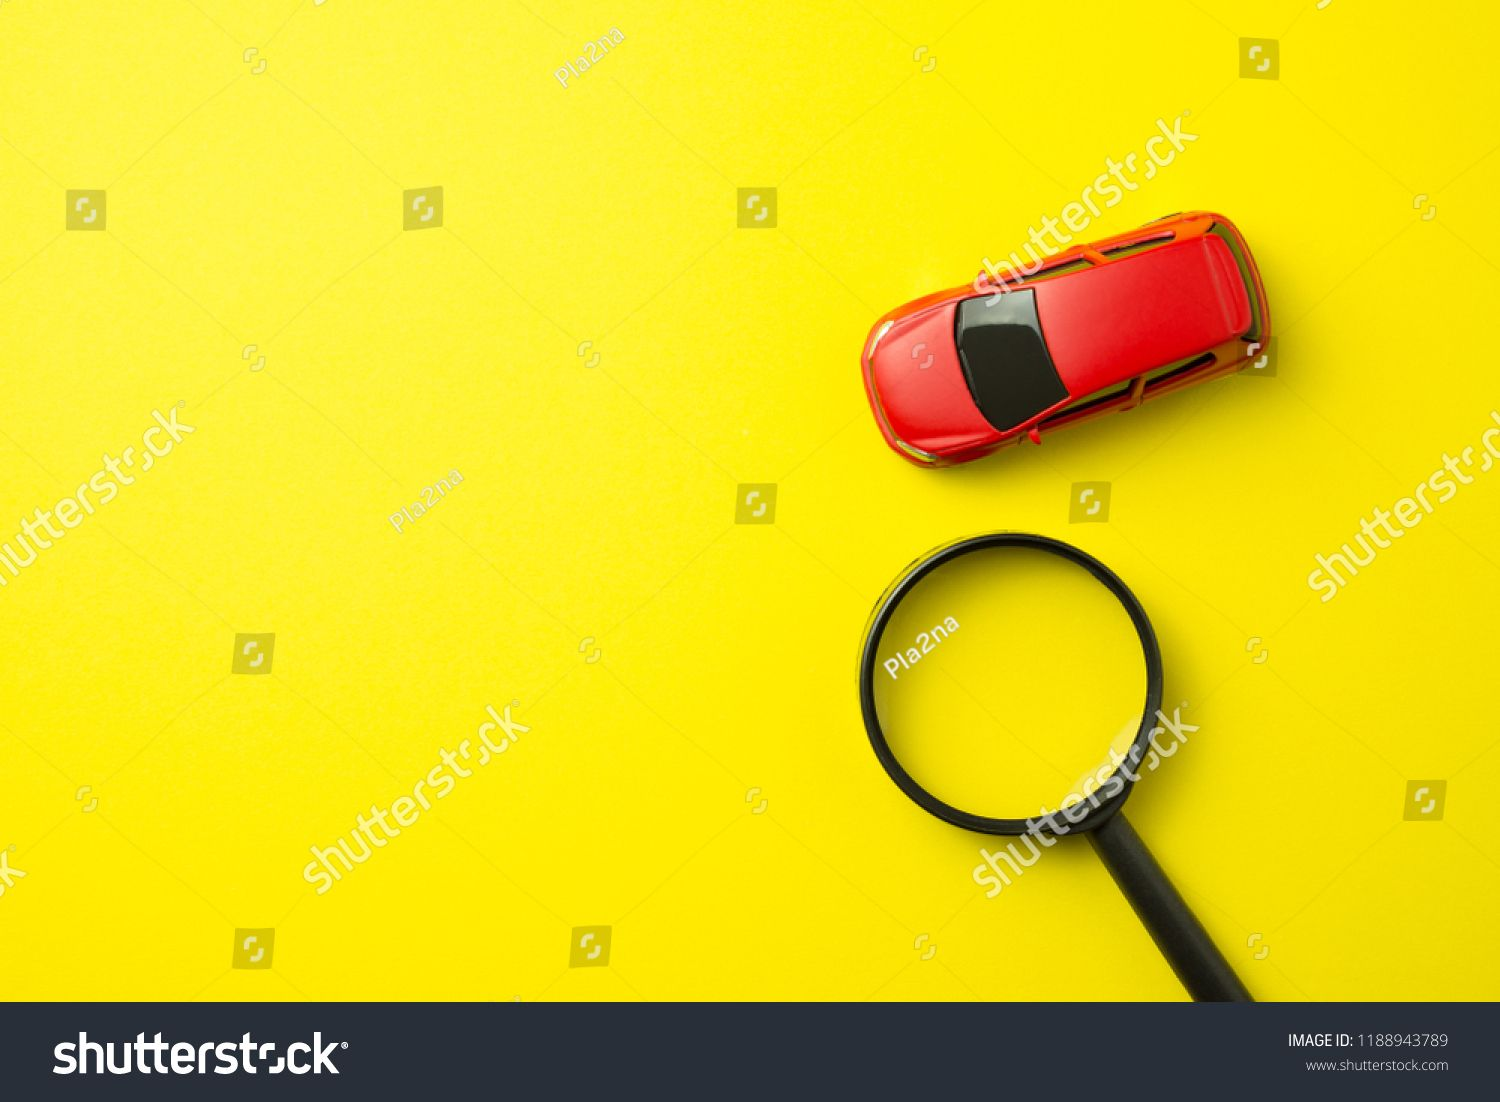 Red Car And Magnifying Glass On Yellow Background With Copy Space Auto Insurance Business Con Auto Insurance Quotes Business Insurance Graphic Design Business